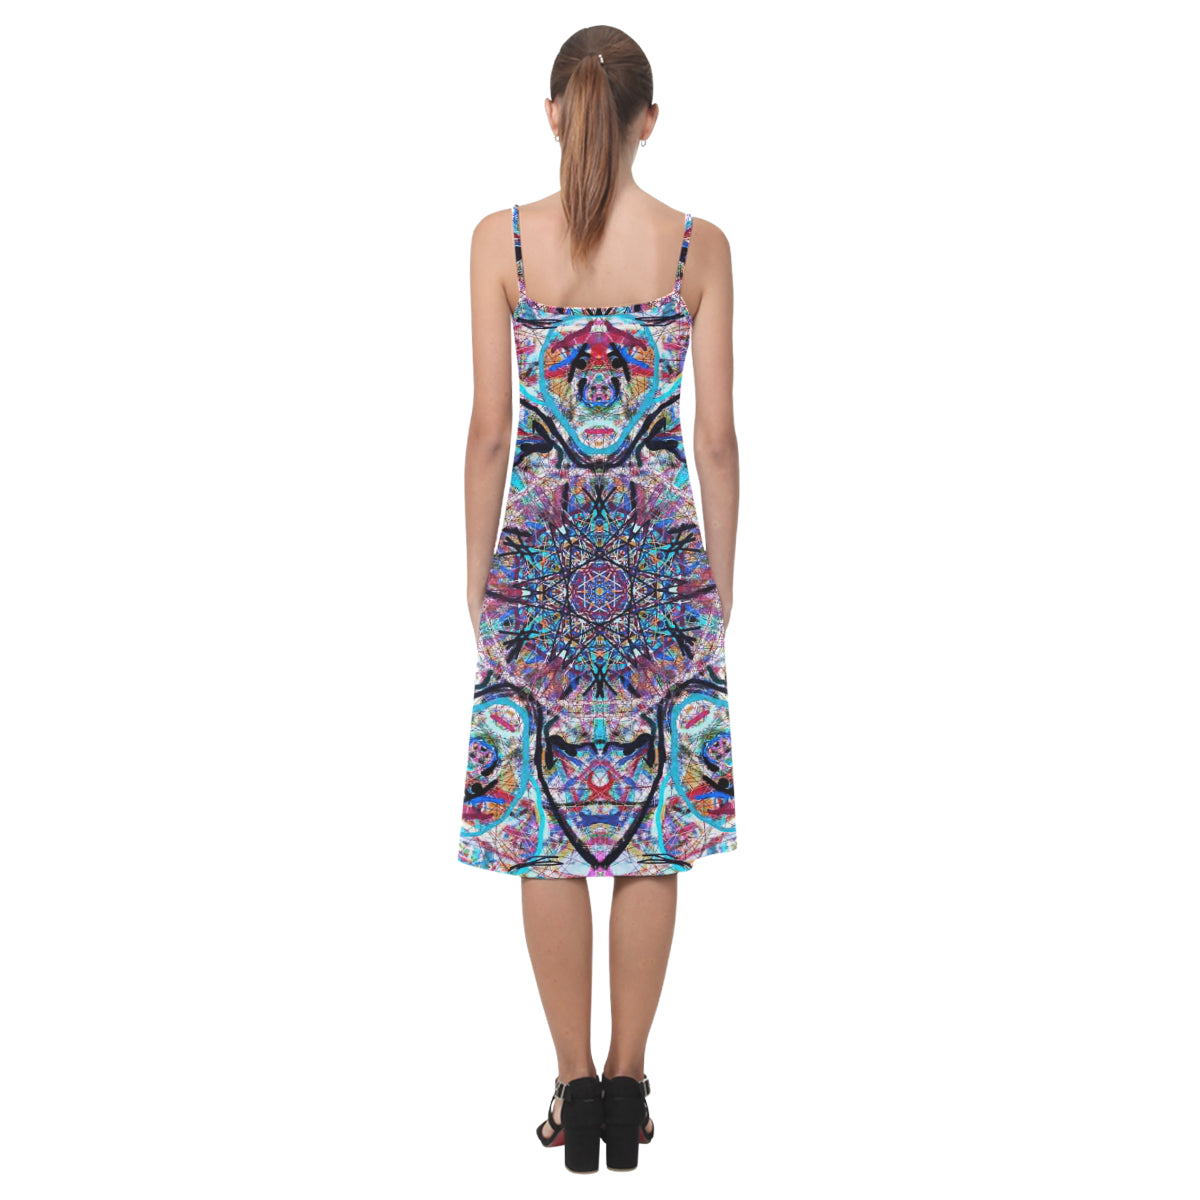 Thleudron Women's Dream Catcher by MAR from Thleudron Alcestis Slip Dress (Model D05) - Thleudron